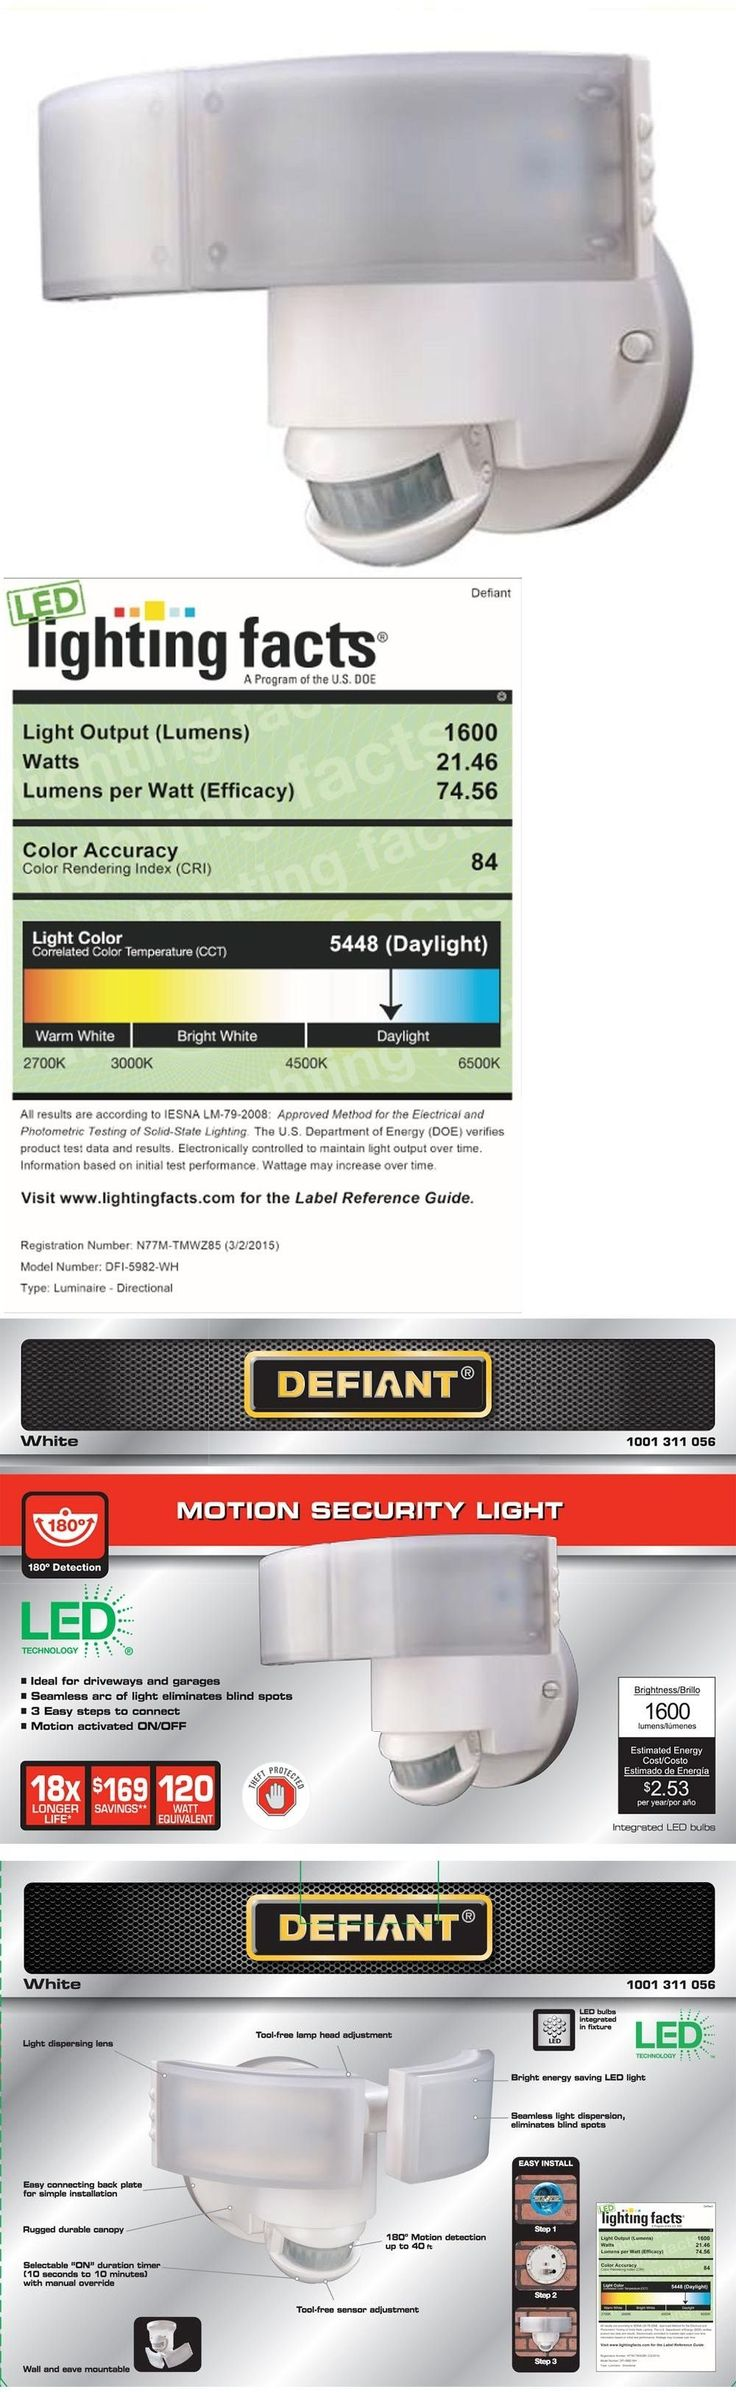 Outdoor Security and Floodlights 183393: Led Outdoor Security Light 180 Degree Motion Sensor Spot Lights Dusk To Dawn New -> BUY IT NOW ONLY: $90.96 on eBay!